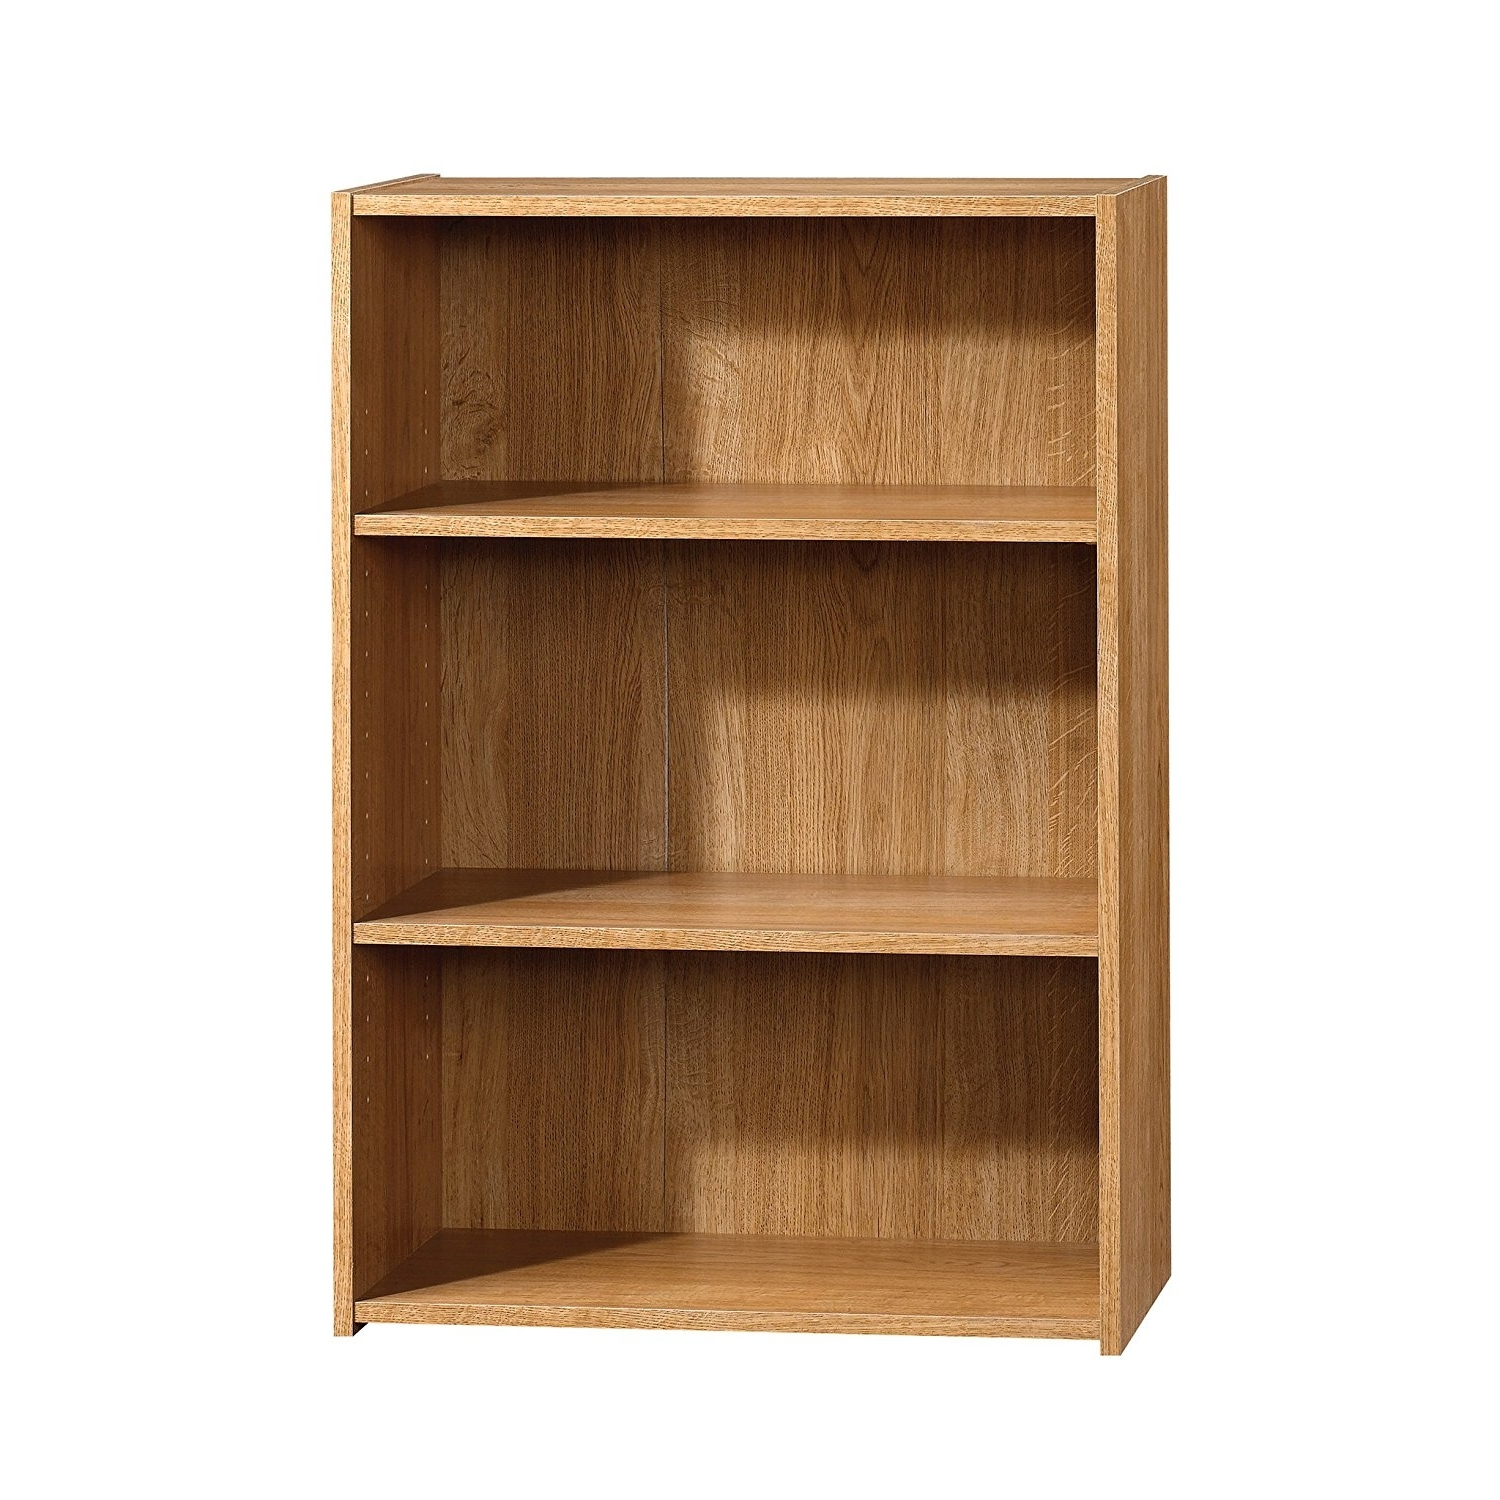 Replacement Shelves For Bookcases In 2018 Bookcase 95+ Stunning Replacement Shelves For Pictures Design Wood (View 9 of 15)